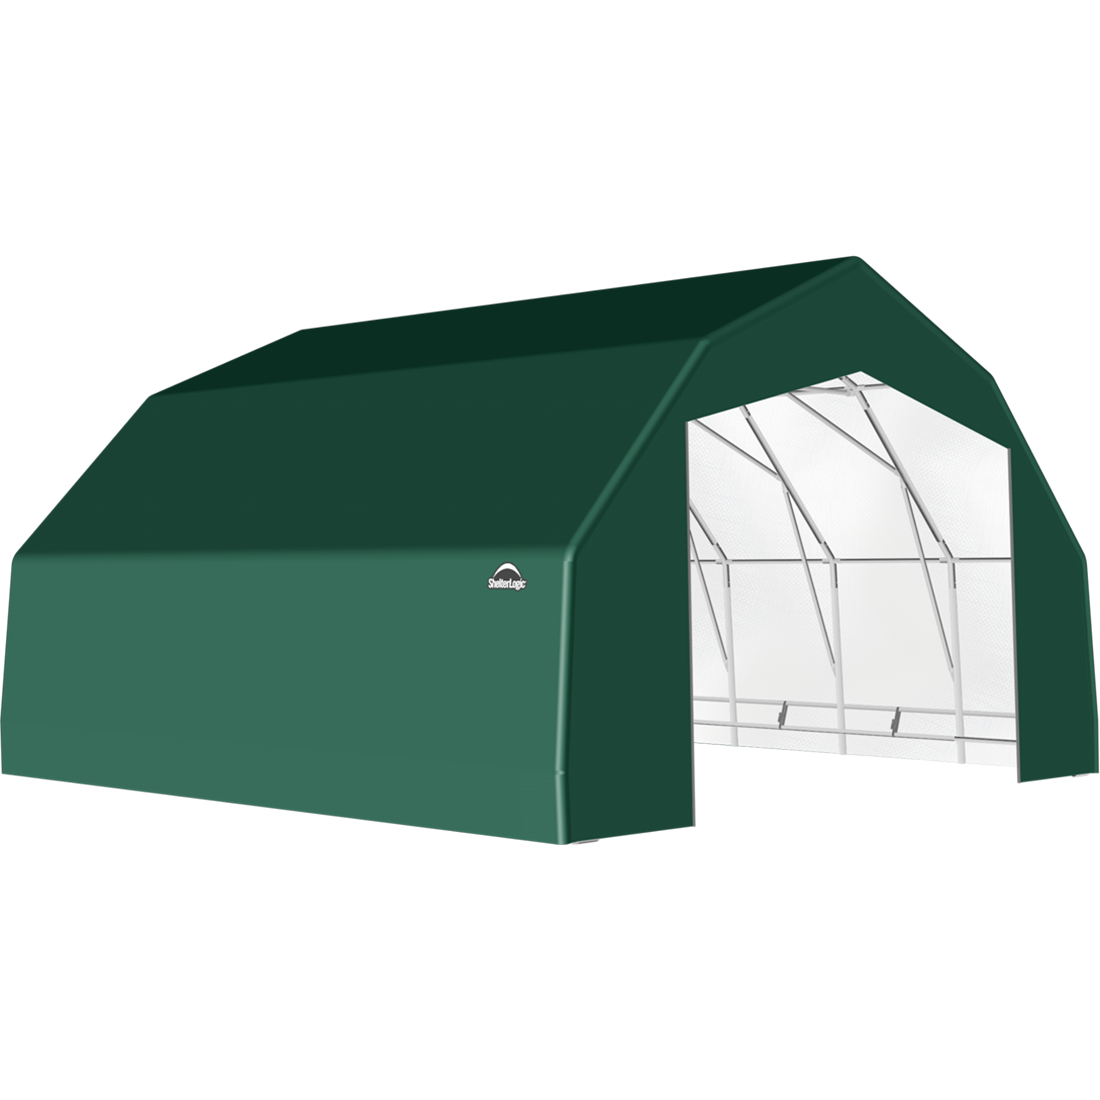 SP Barn 25X28X14 Green 14 oz PE Shelter